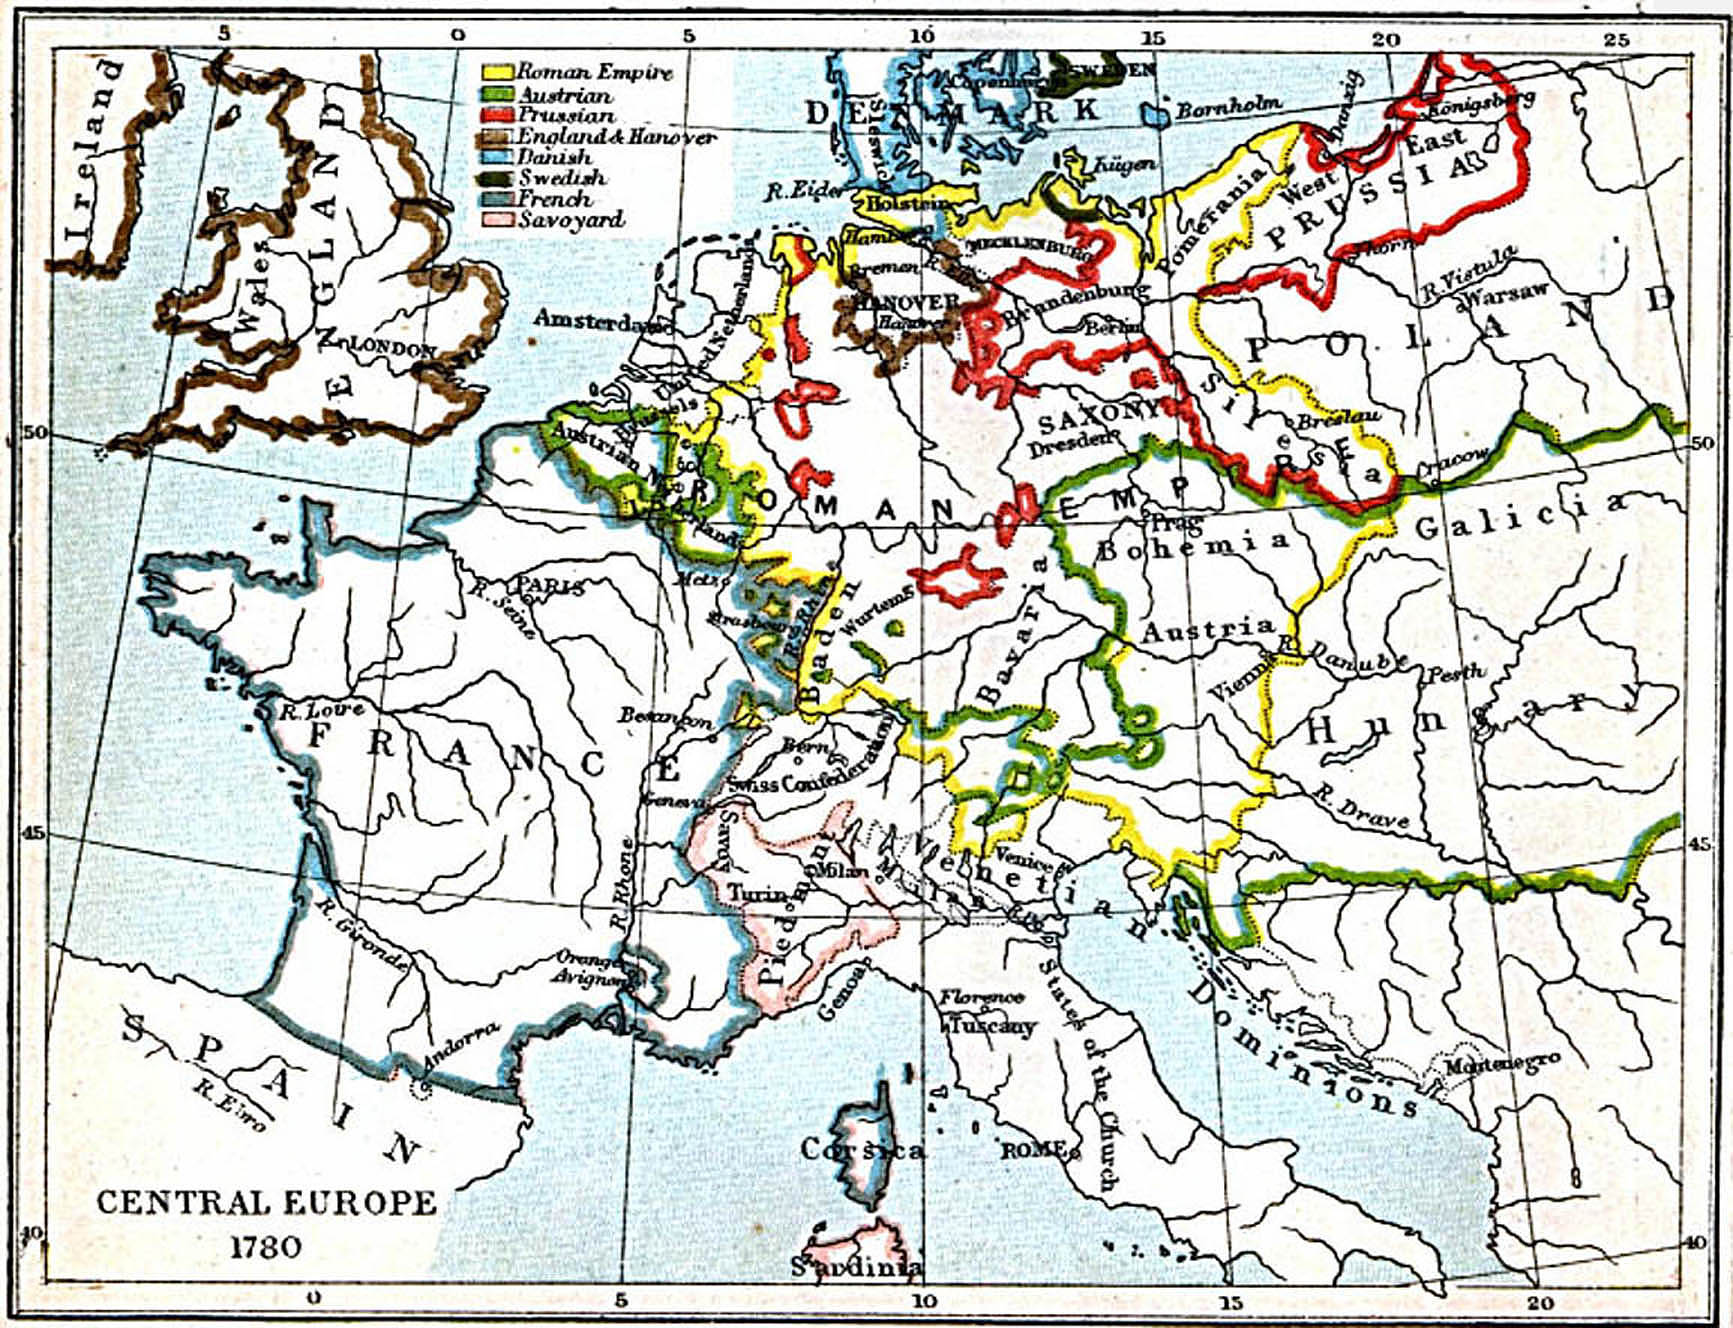 Maps of central europe 980 ad 1871 ad perry castaeda map central europe 1780 ad gumiabroncs Images